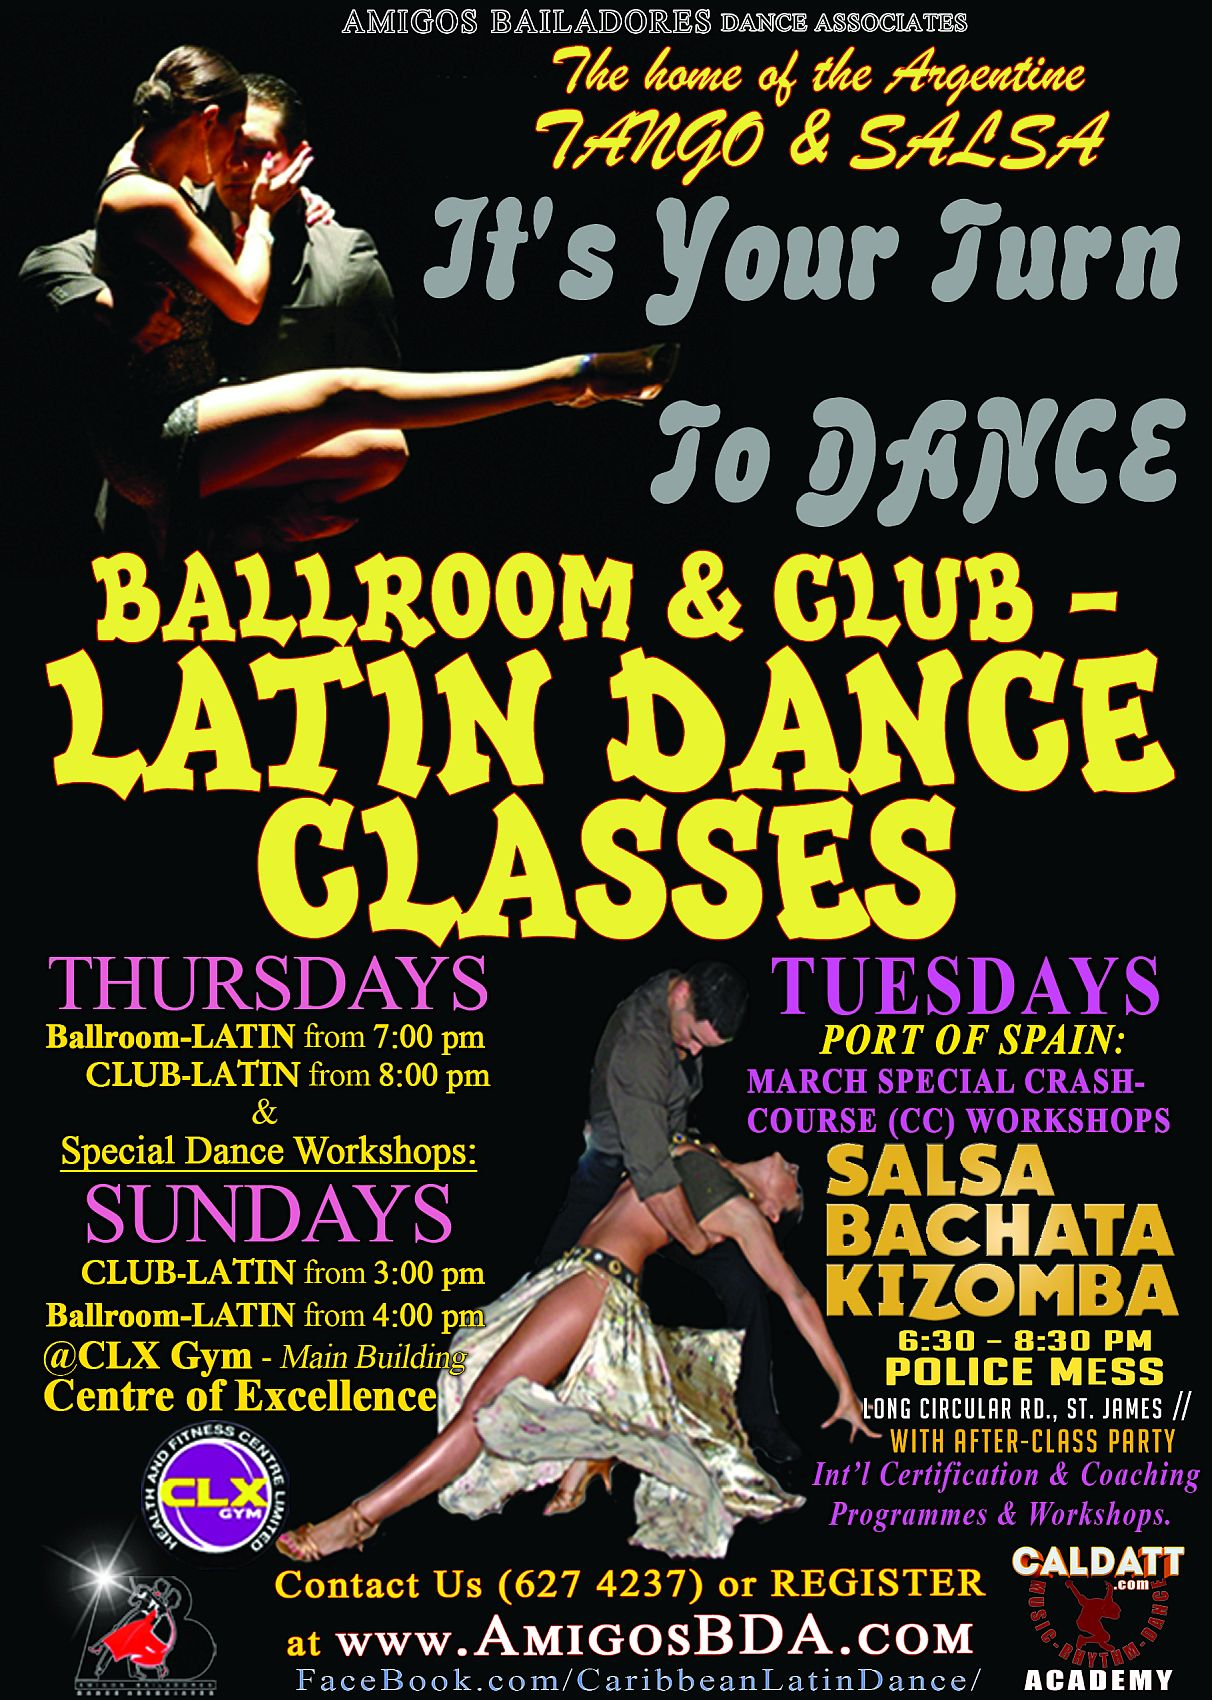 ABDA Ballroom and Latin Dance Classes in Trinidad and Tobago